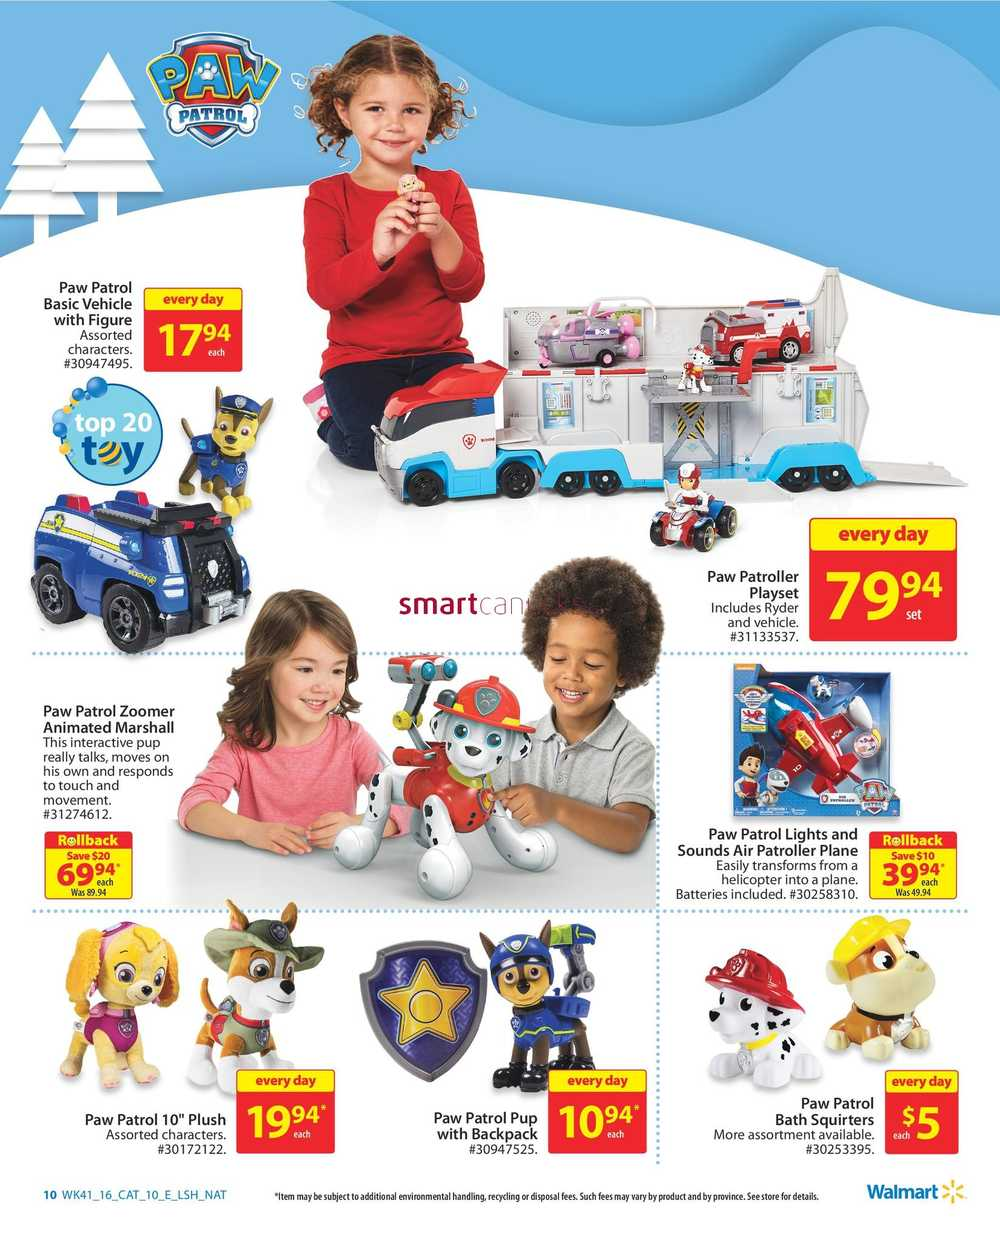 Walmart Toys For 10 And Up : Walmart toys and electronics gift guide november to